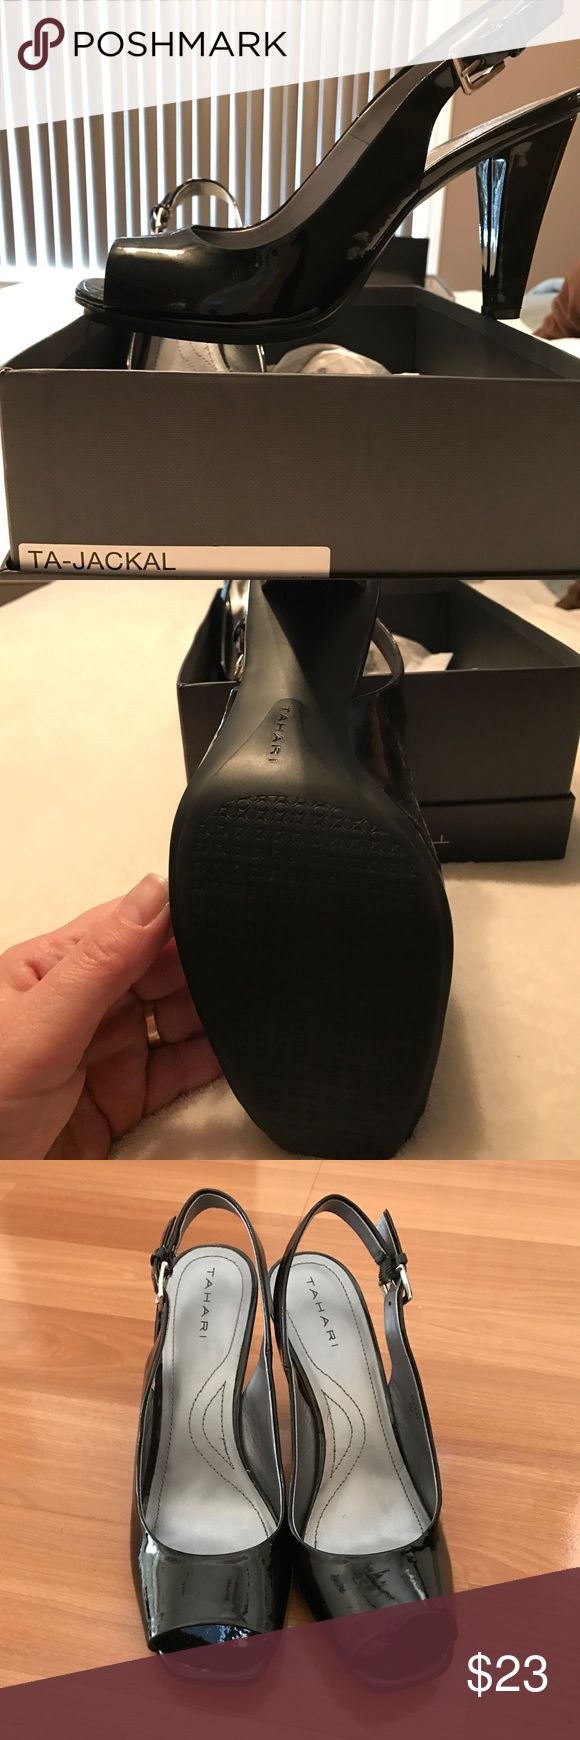 Black patent leather shoe Worn once to a bridal shower, very comfortable because the bottom of the shoe is a non slip rubber sole. So cute on. Tahari Shoes Heels